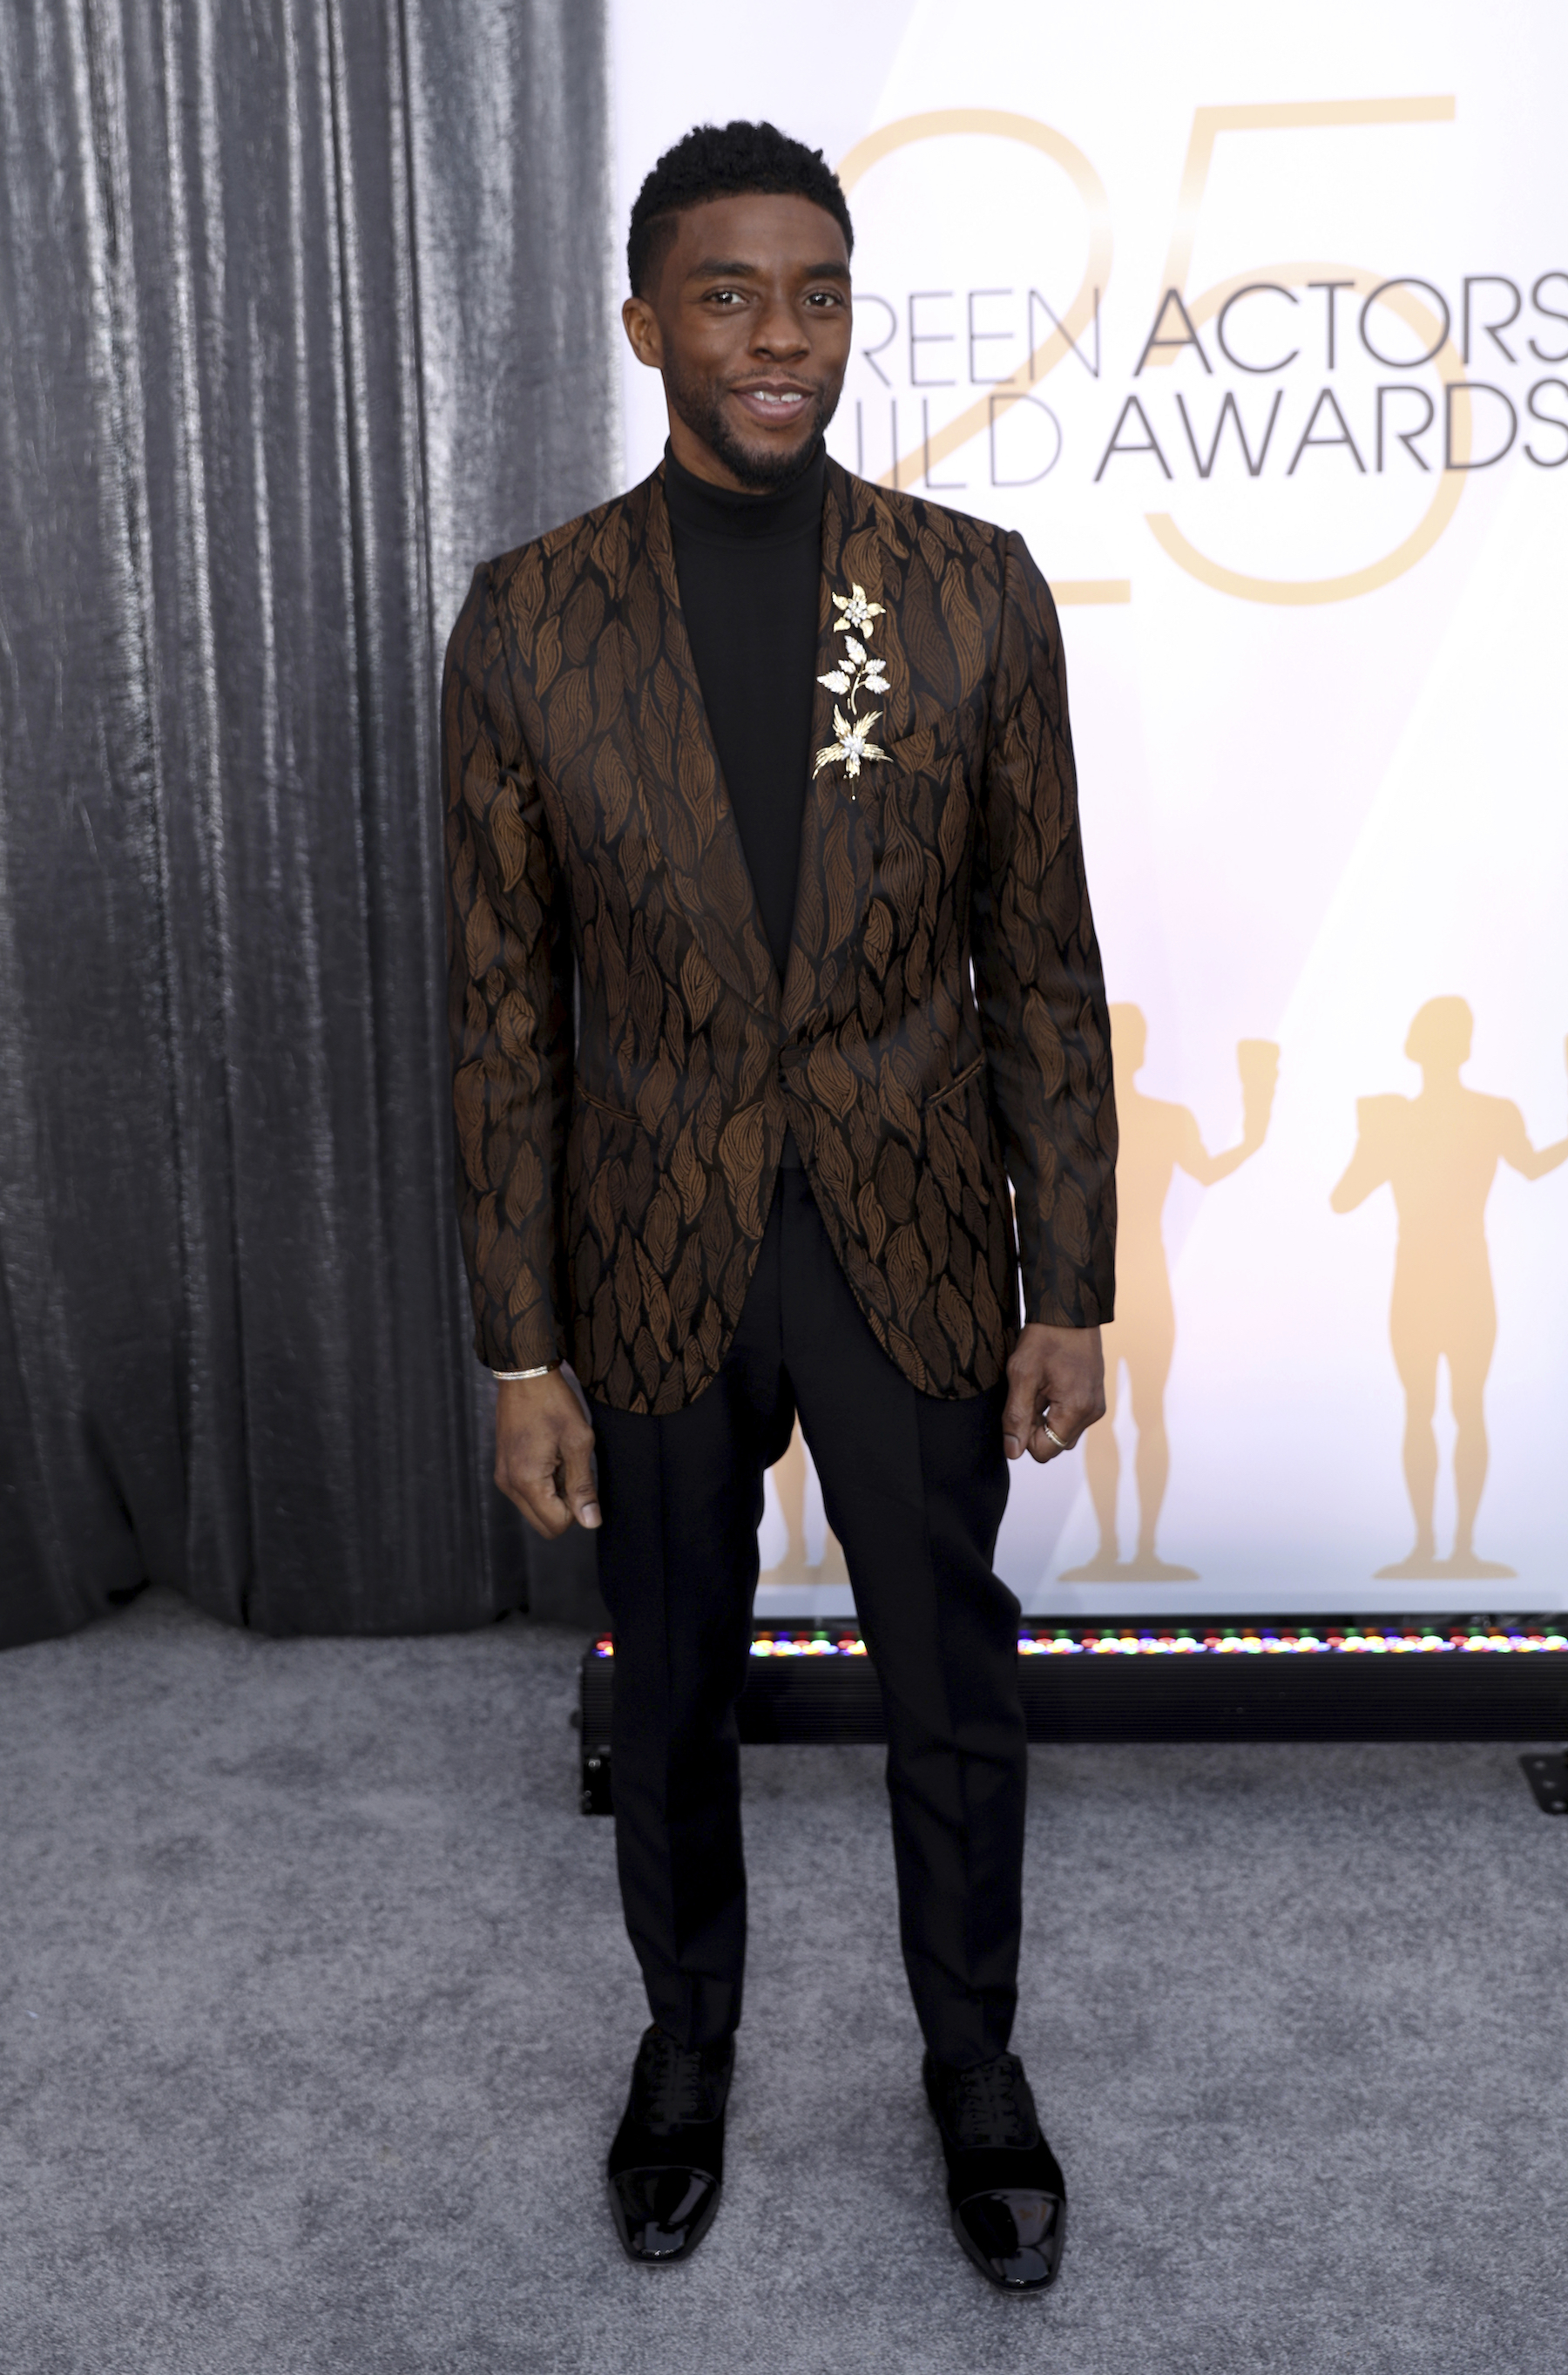 <div class='meta'><div class='origin-logo' data-origin='AP'></div><span class='caption-text' data-credit='Matt Sayles/Invision/AP'>Chadwick Boseman arrives at the 25th annual Screen Actors Guild Awards at the Shrine Auditorium & Expo Hall on Sunday, Jan. 27, 2019, in Los Angeles.</span></div>